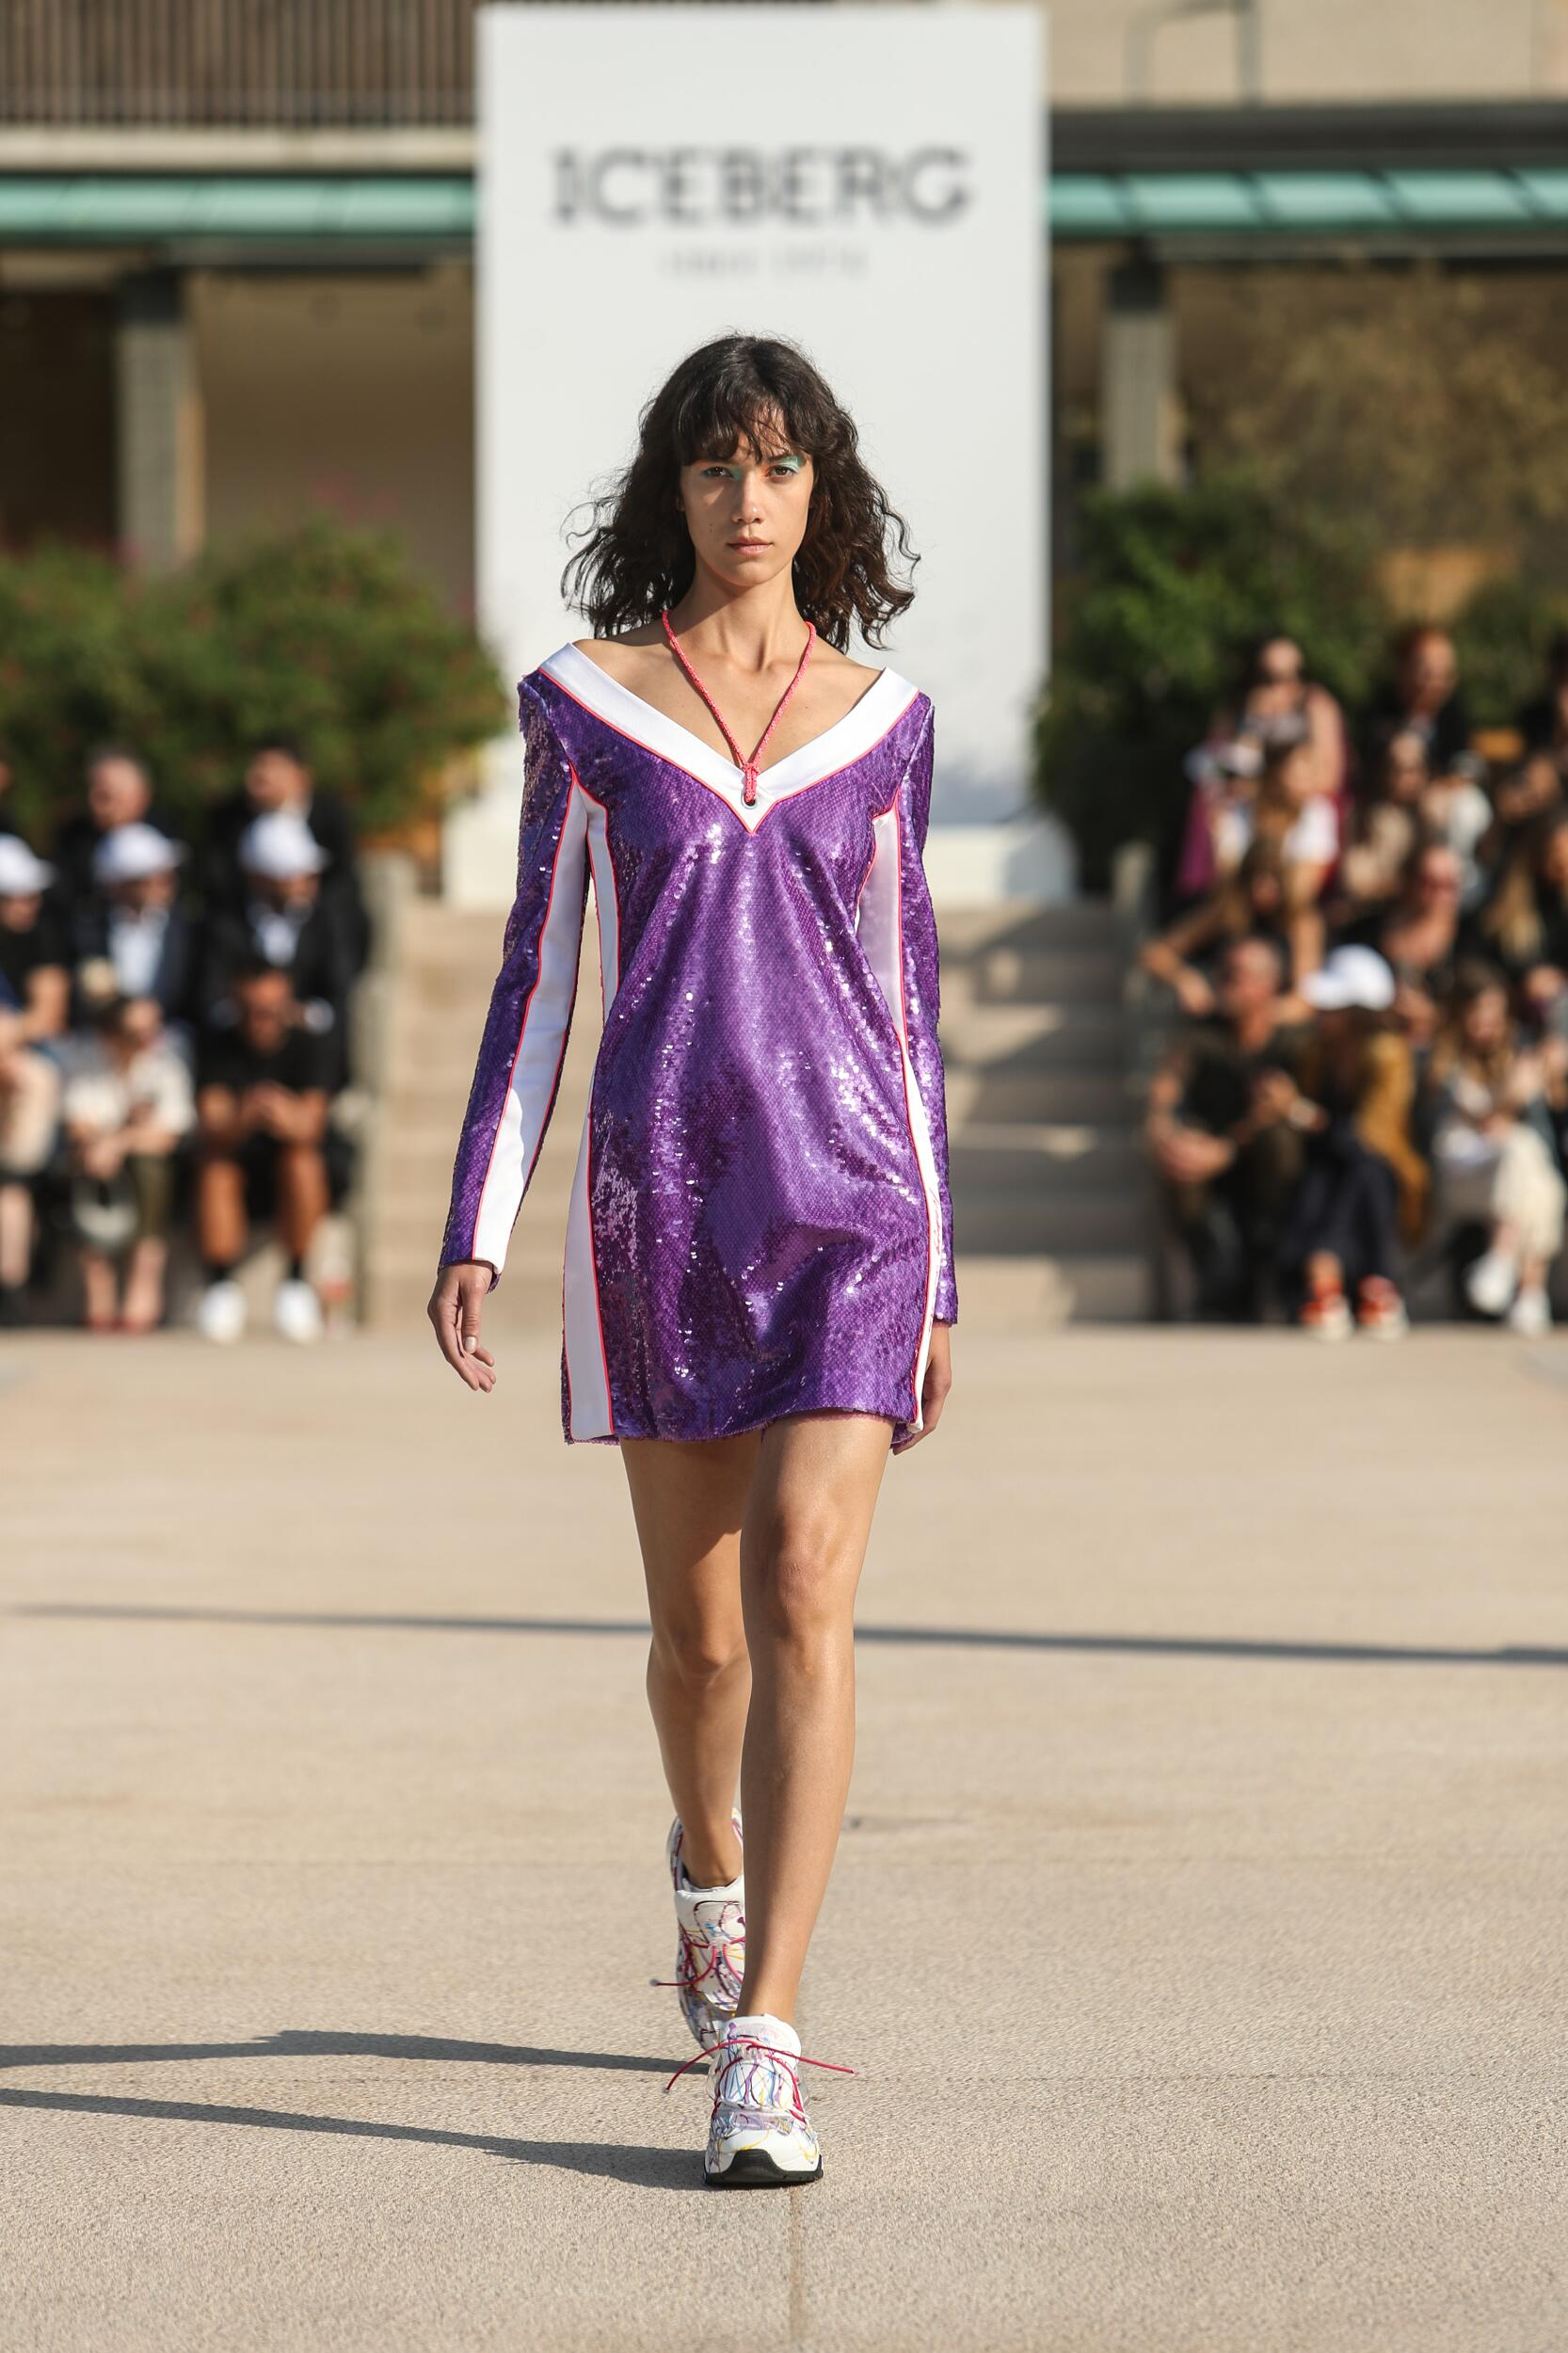 Iceberg Summer 2020 Catwalk